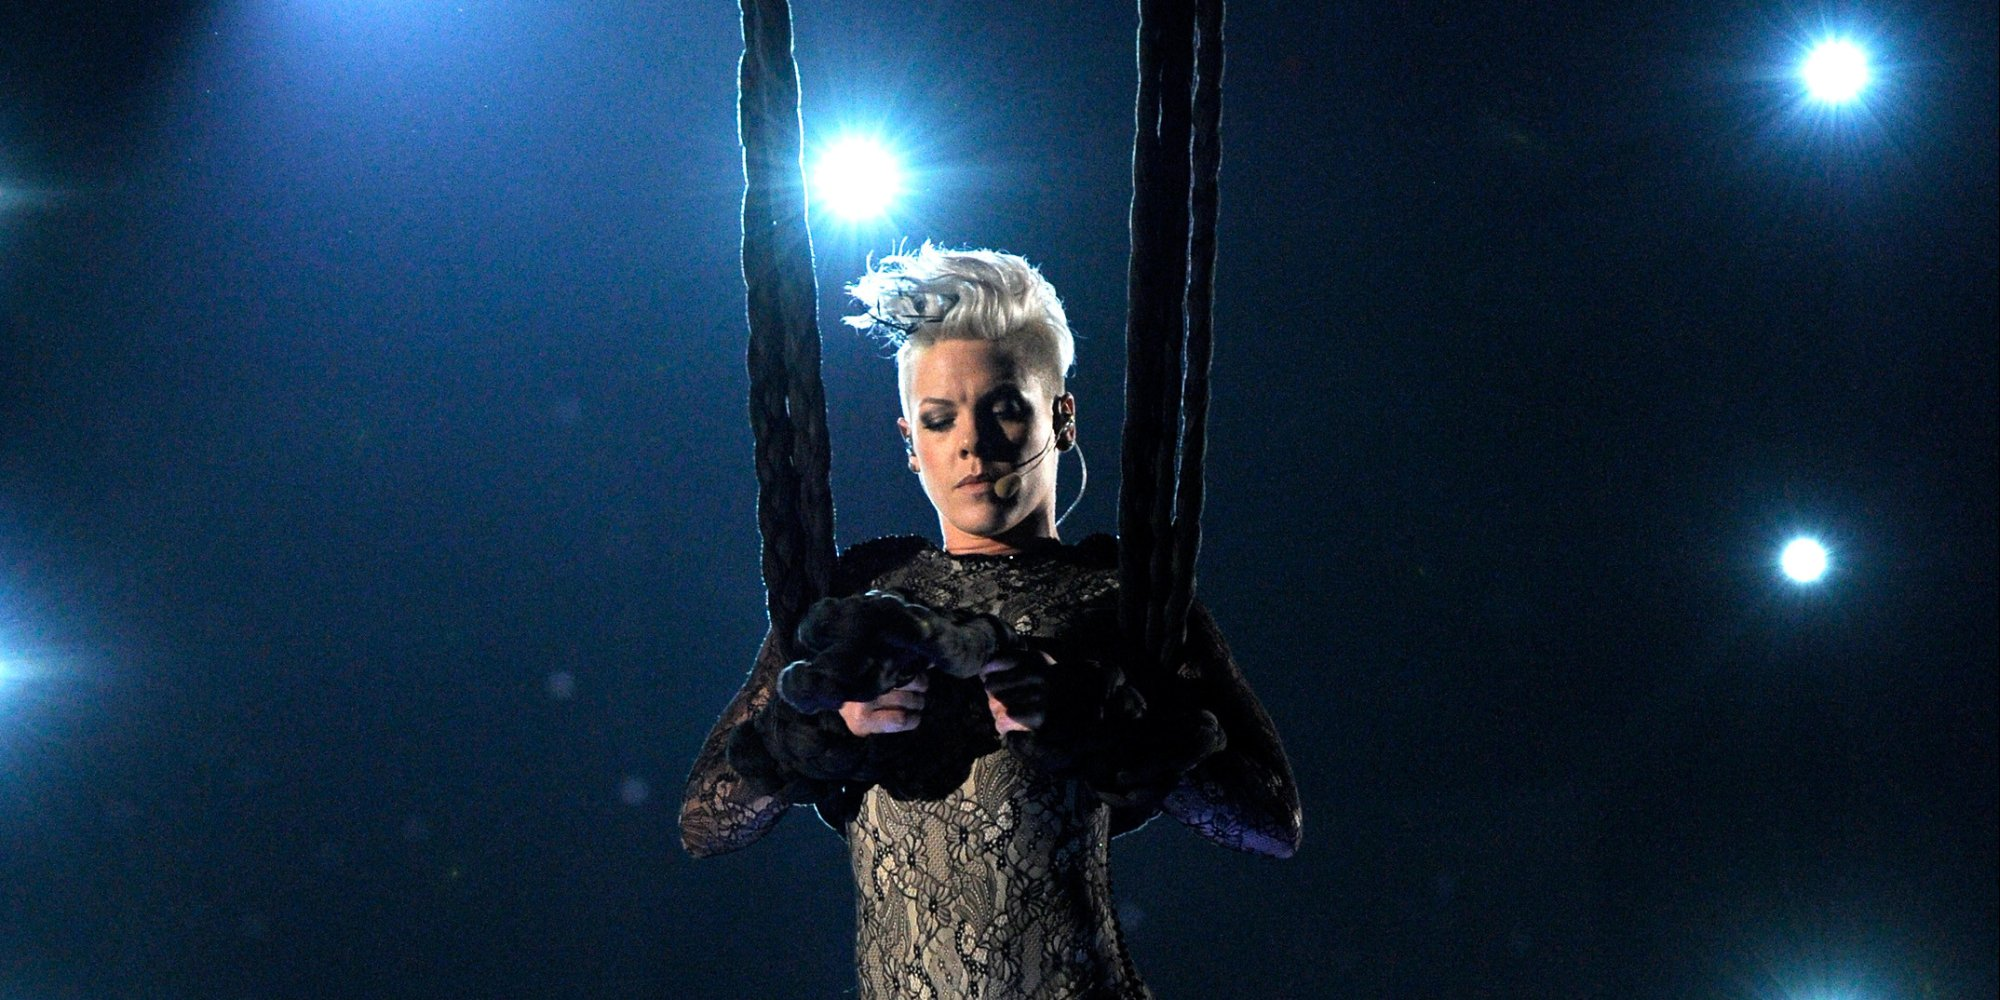 Pink Grammys Performance Singer Opens With Acrobatics, Joins Nate Ruess For Just -3651